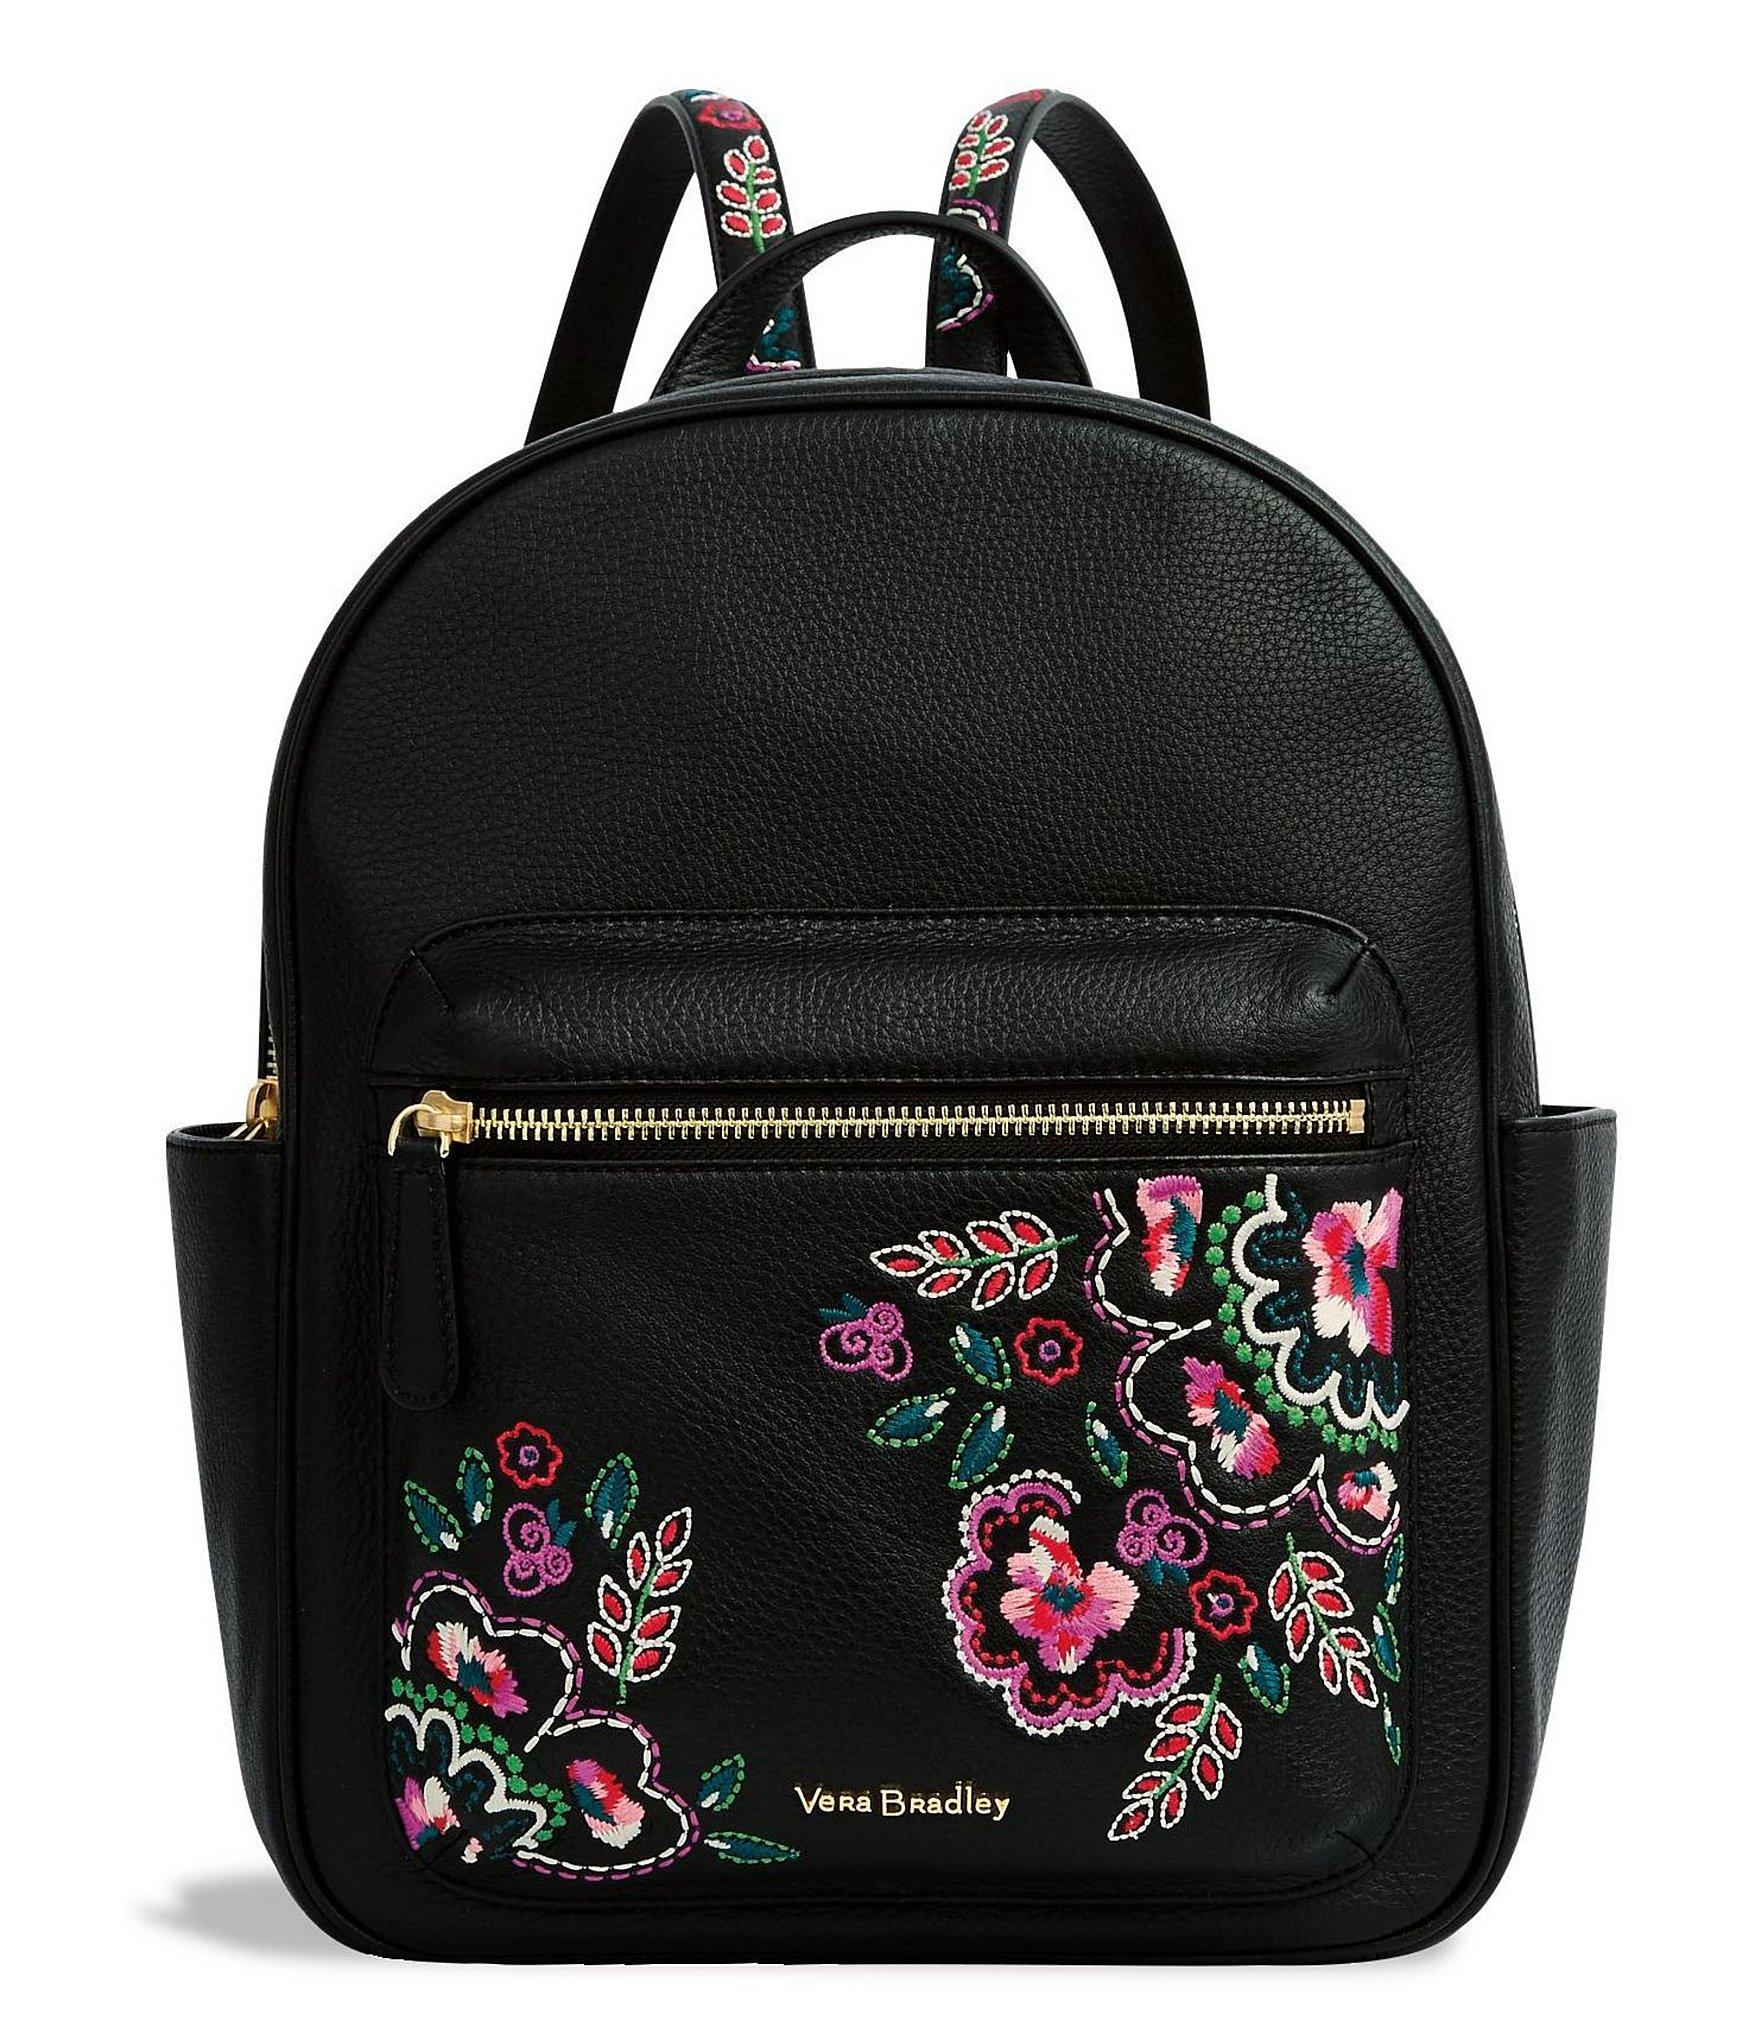 Lyst Vera Bradley Leighton Floral Embroidered Backpack